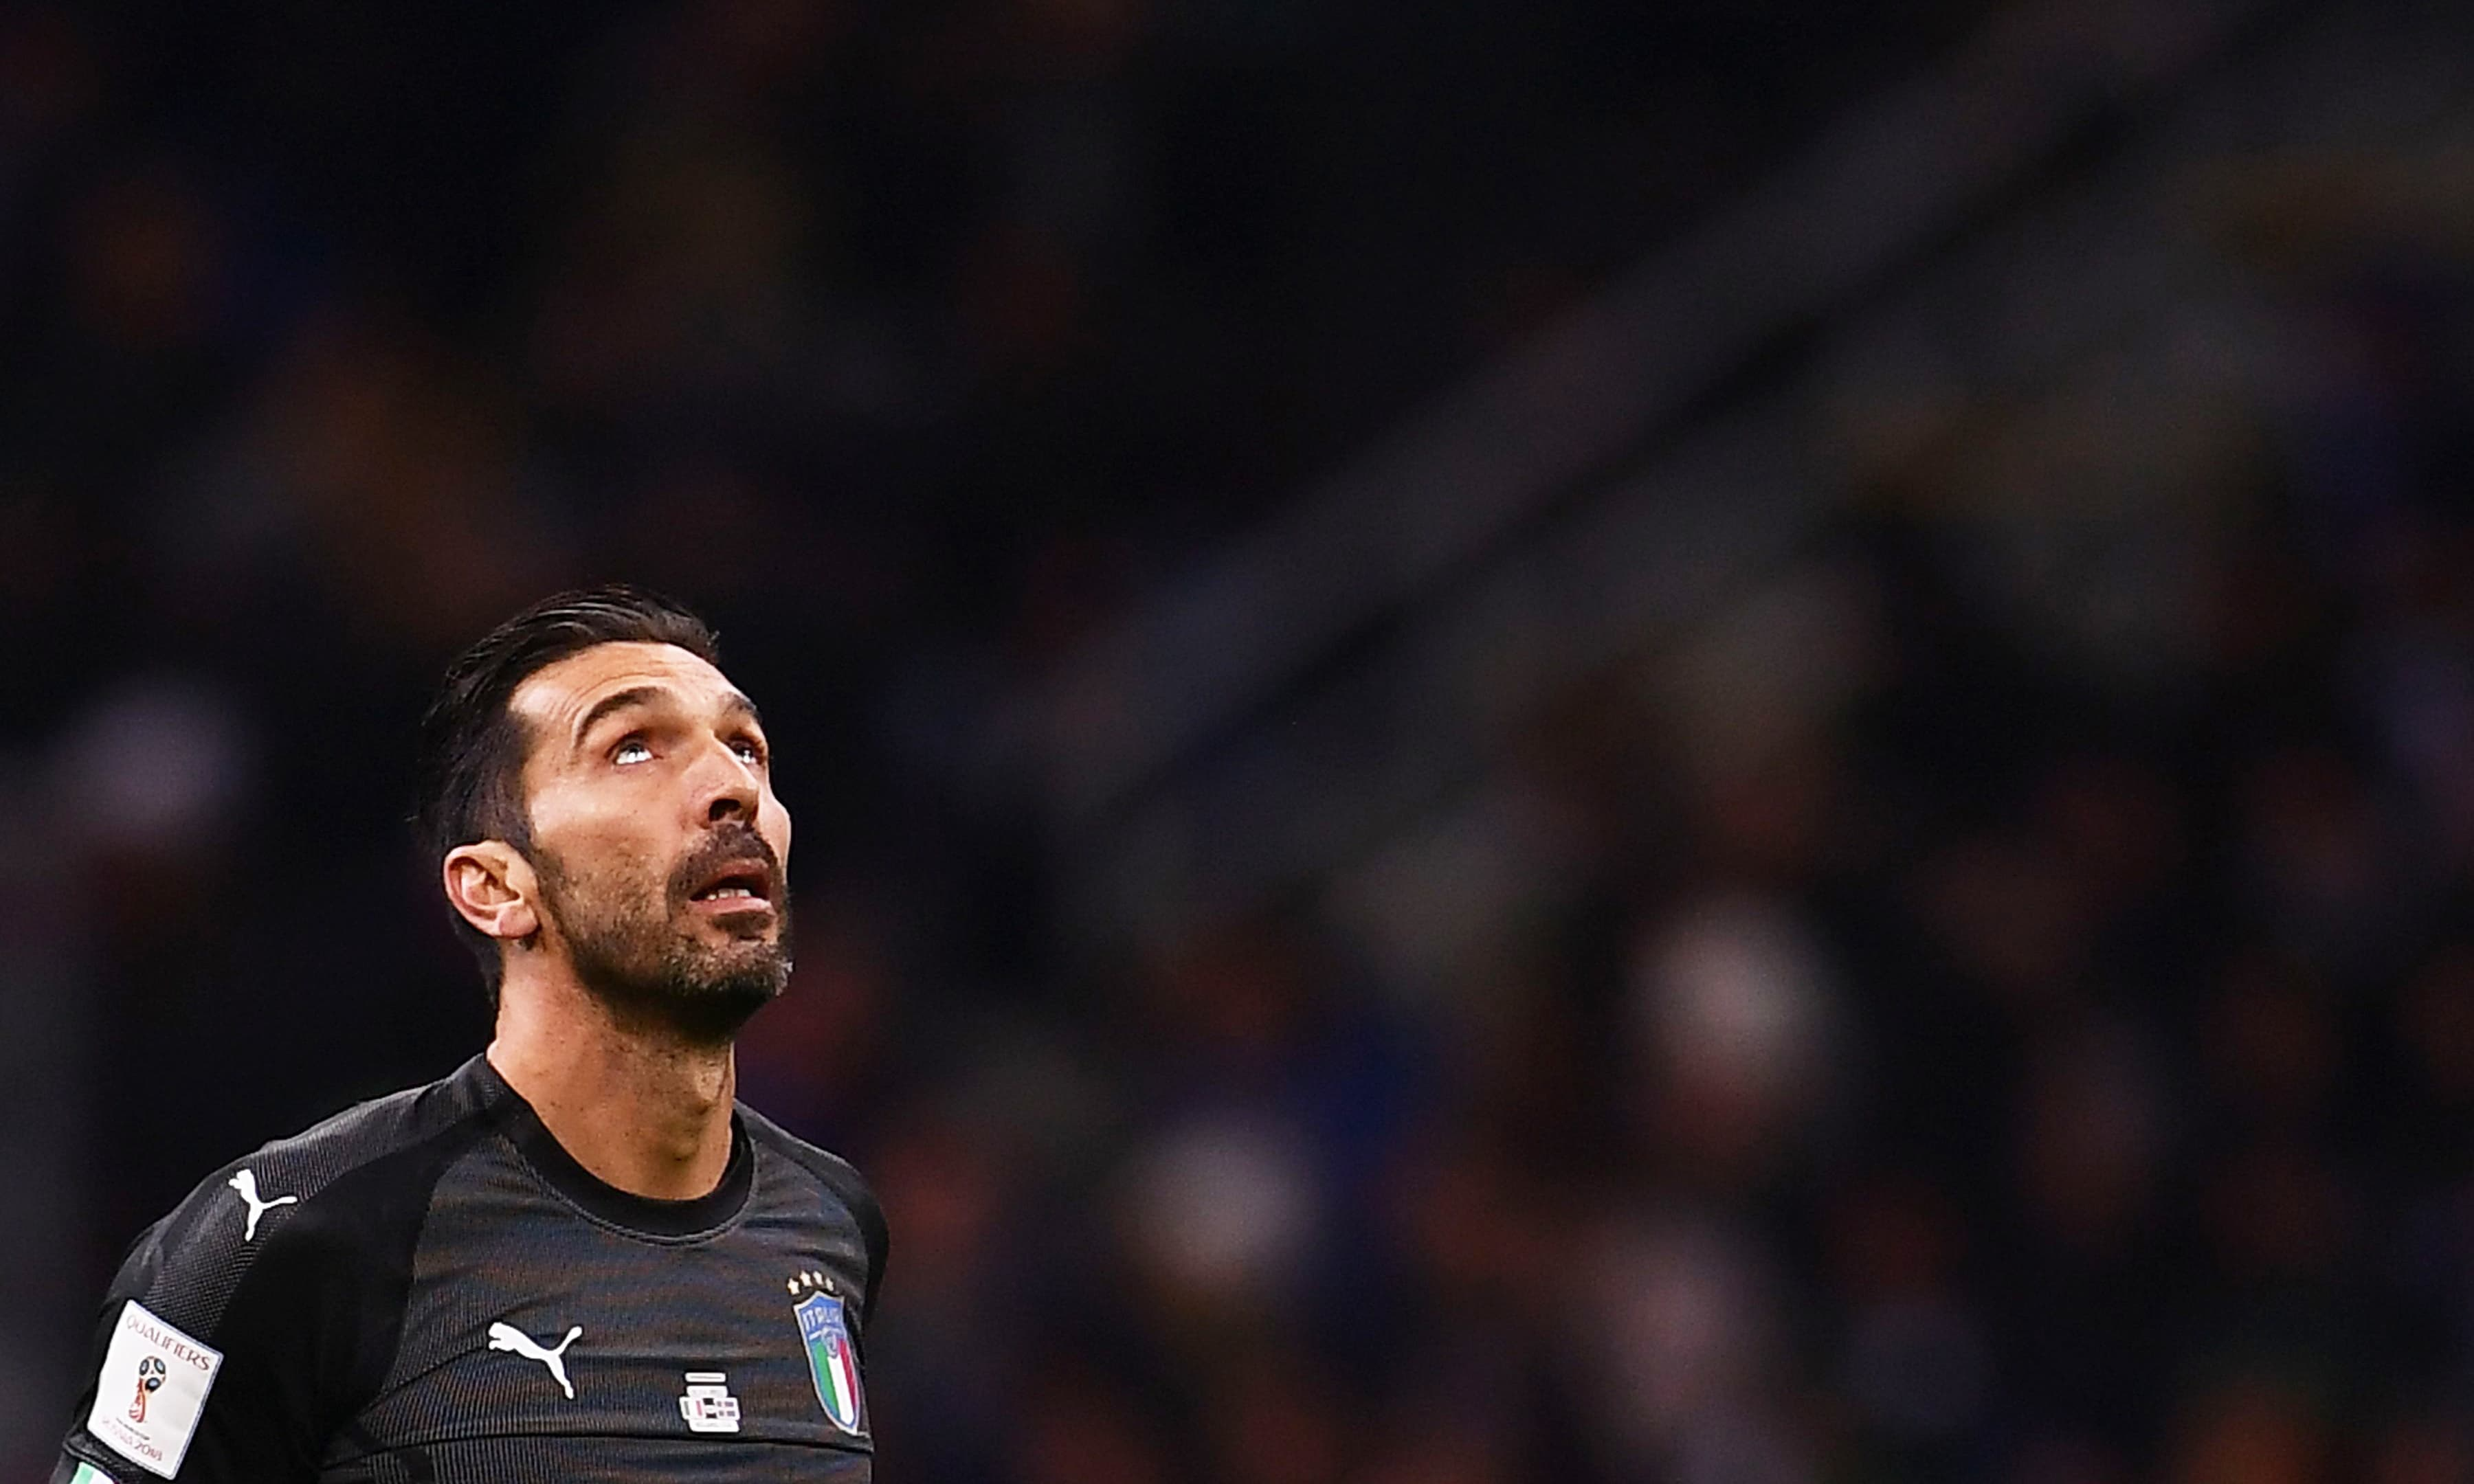 Italy's goalkeeper Gianluigi Buffon reacts during the FIFA World Cup 2018 qualification football match between Italy and Sweden. —AFP